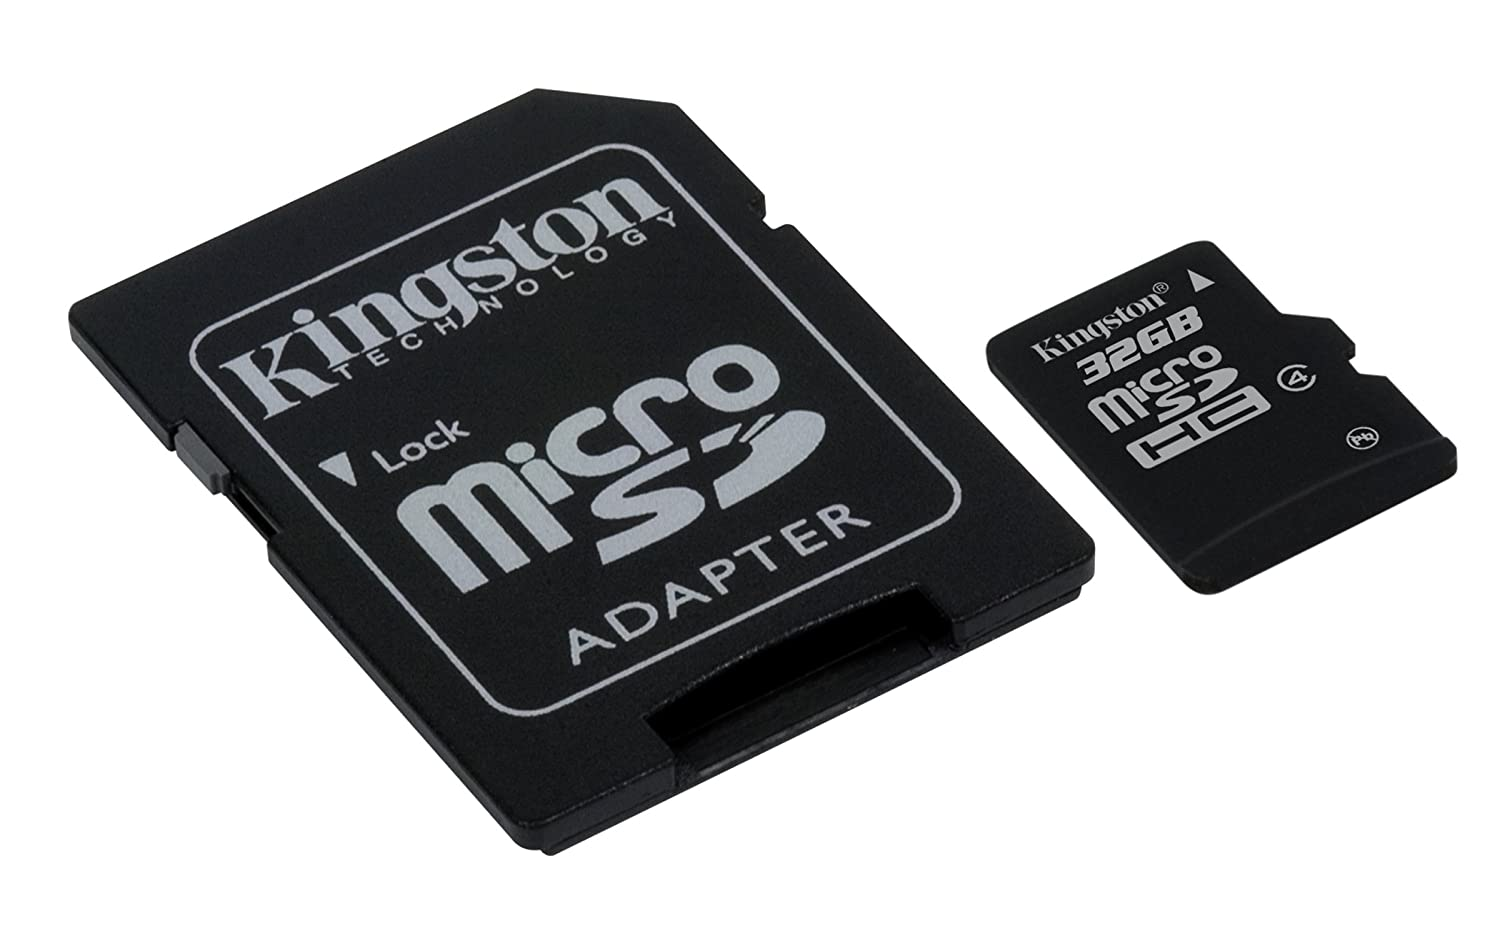 Kingston SDC4/32GB - Tarjeta Micro SDC4/32GB (SDHC Clase 4, 32 GB con Adaptador)